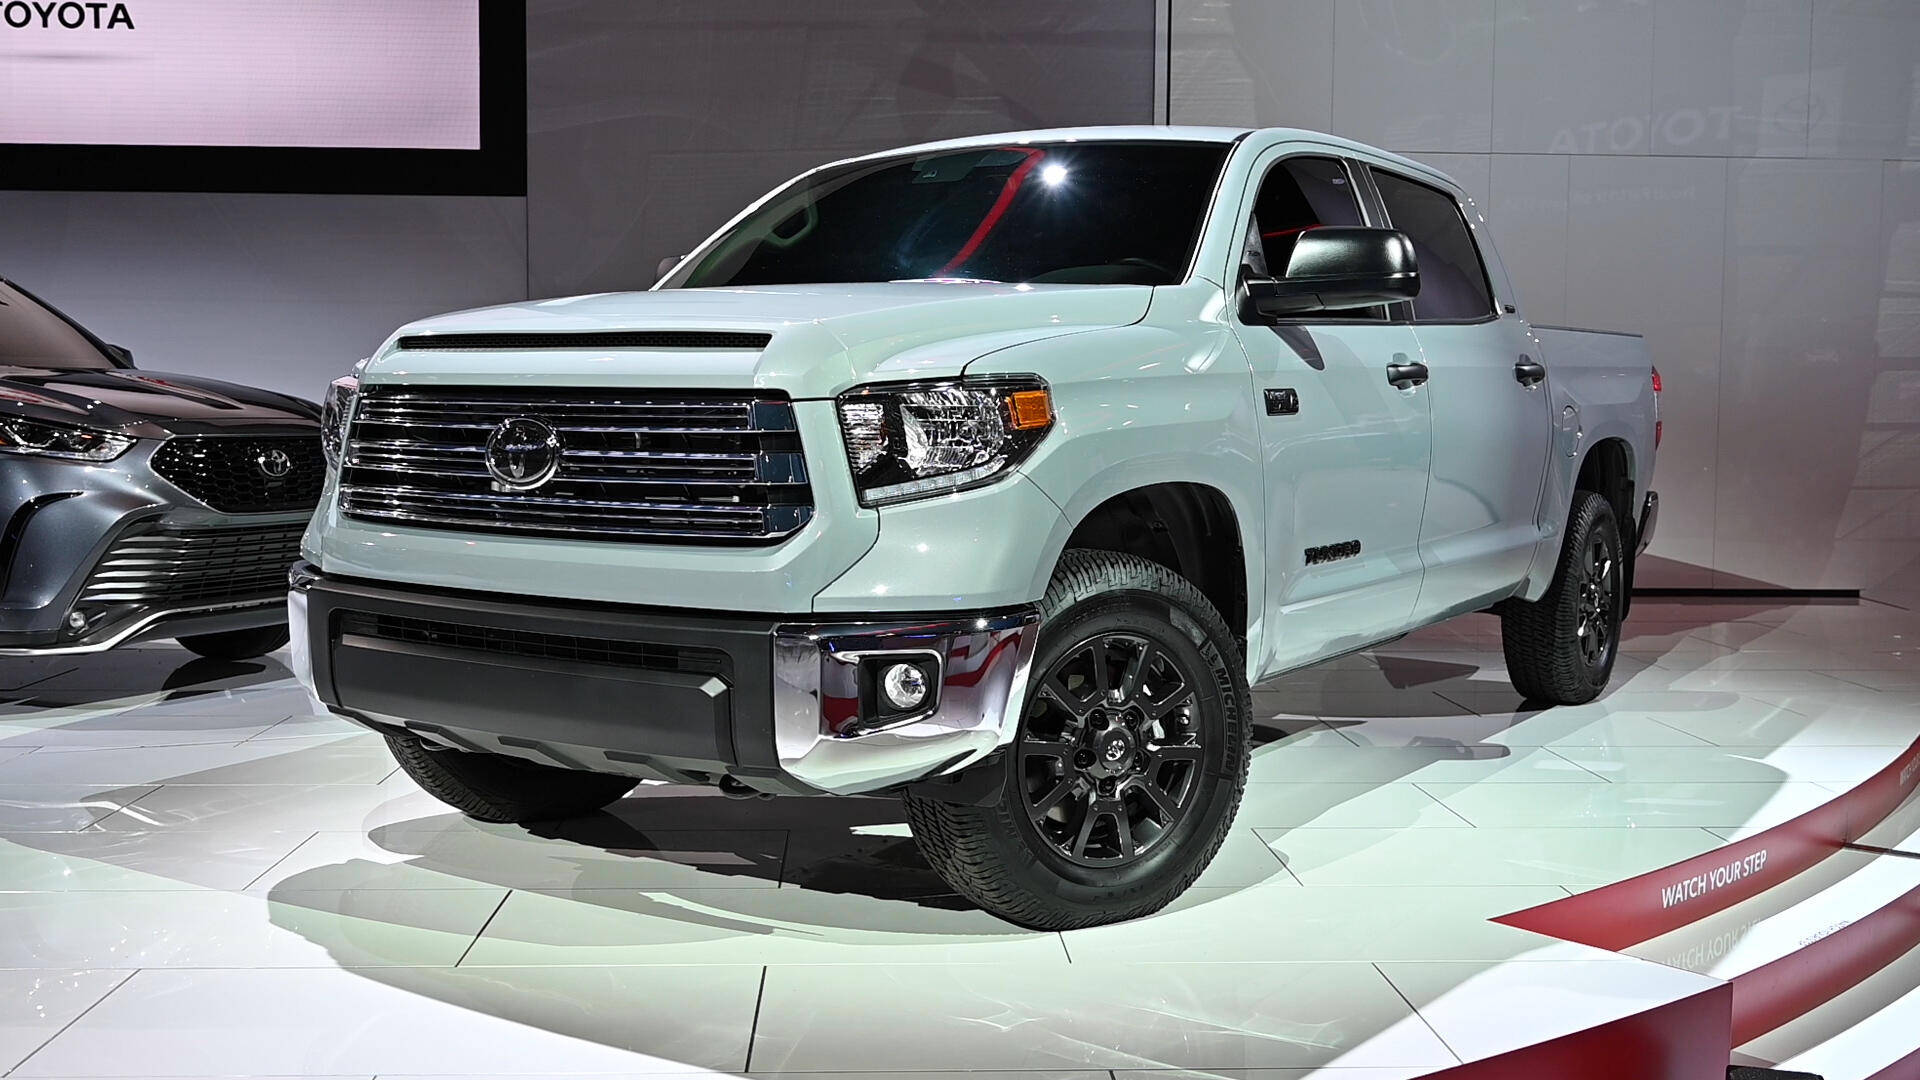 Video: Toyota Tacoma, Tundra and 4Runner Trail models unveiled at the Chicago Auto Show